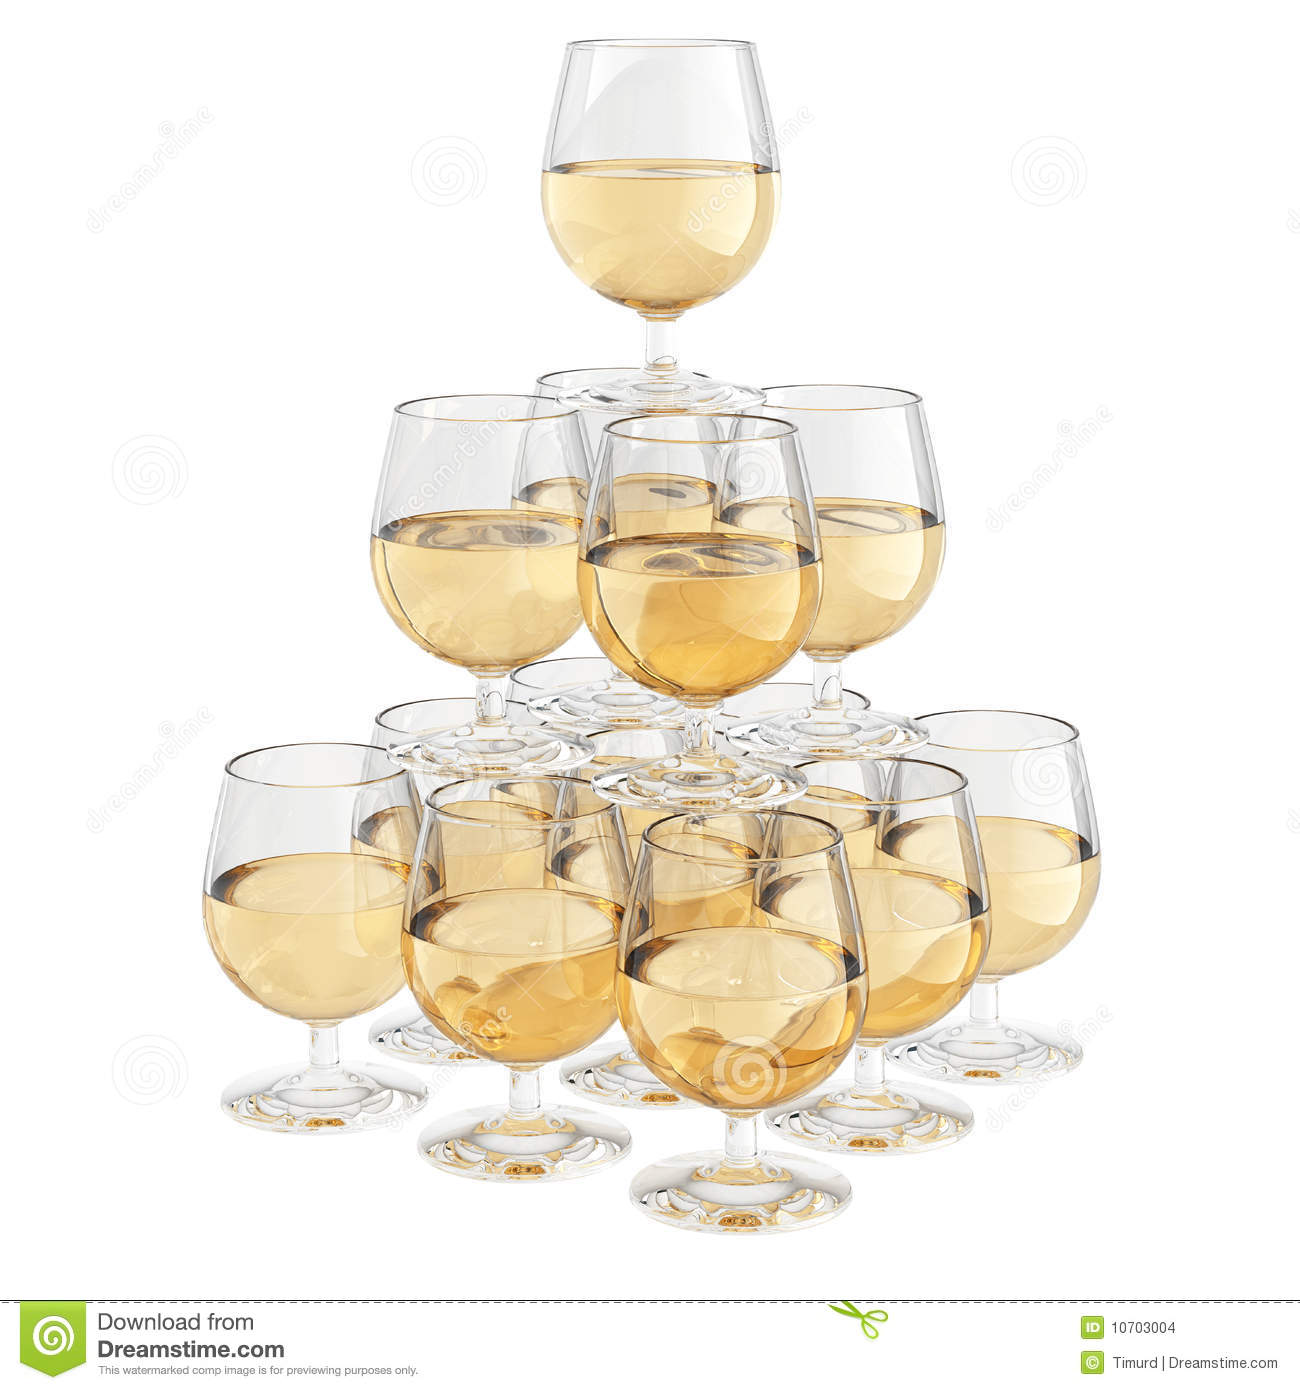 champagne glass pyramid stock illustration image of glass. Black Bedroom Furniture Sets. Home Design Ideas